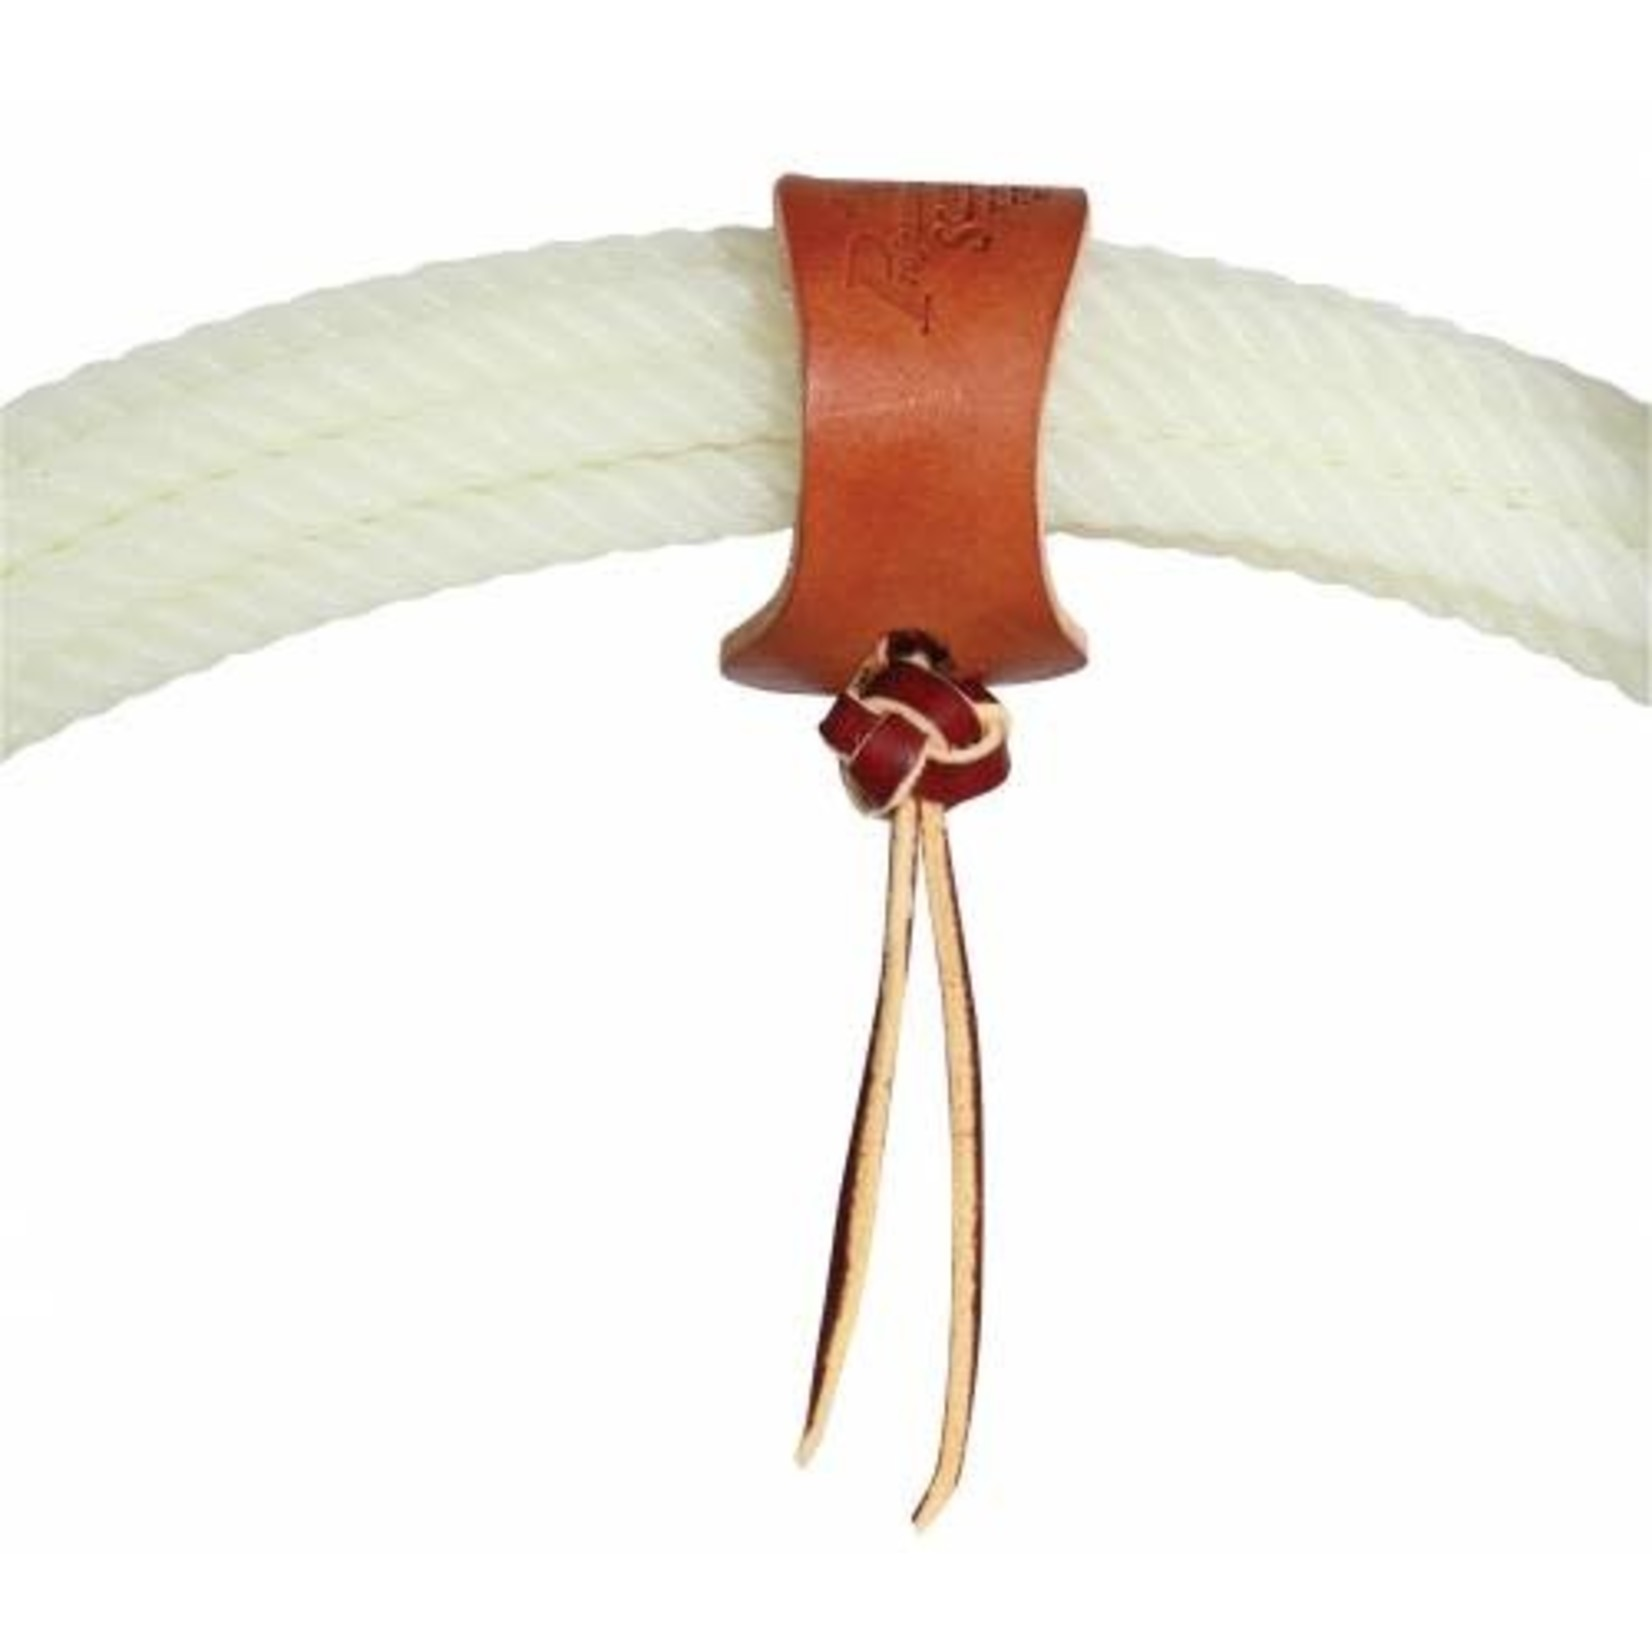 Professional's Choice Rope Holder Pineapple Knot